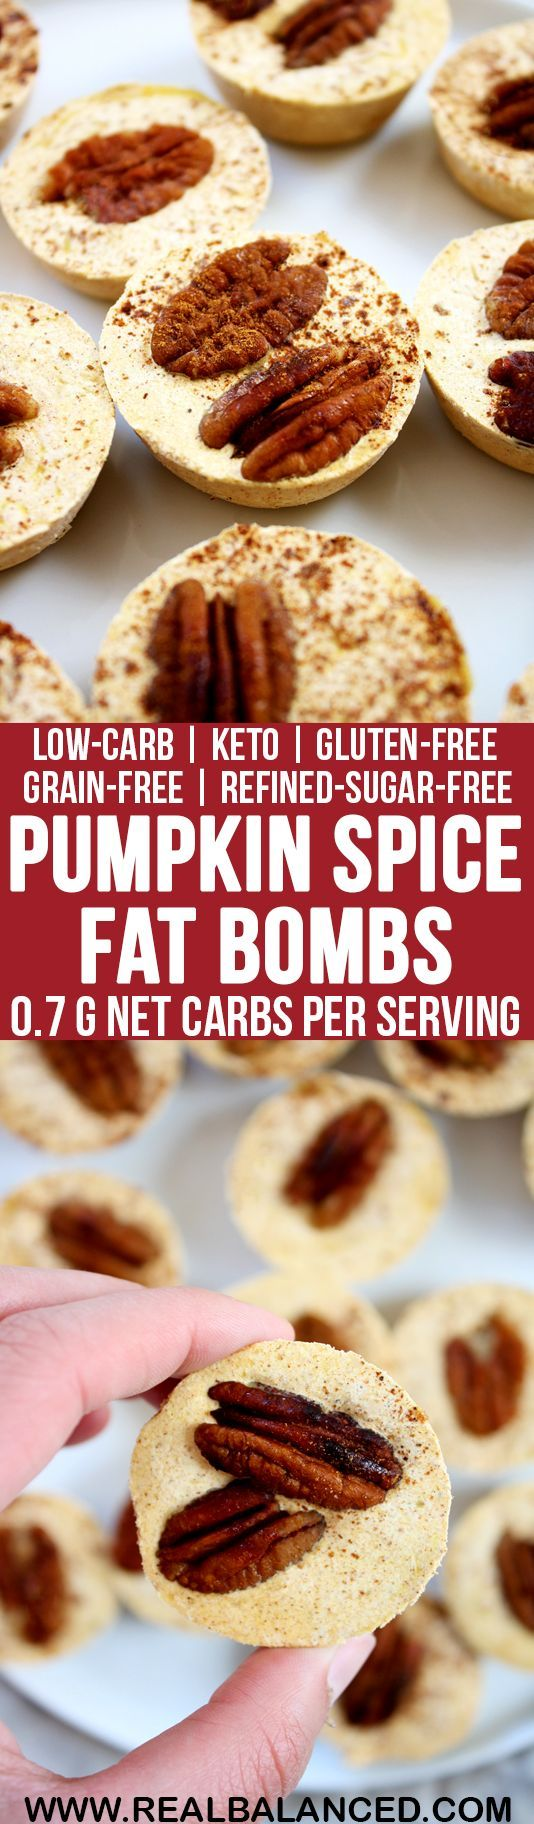 Pumpkin Spice Fat Bombs: low-carb, keto, gluten-free, grain-free, & refined-sugar-free! Less than 1g net carbs per serving!